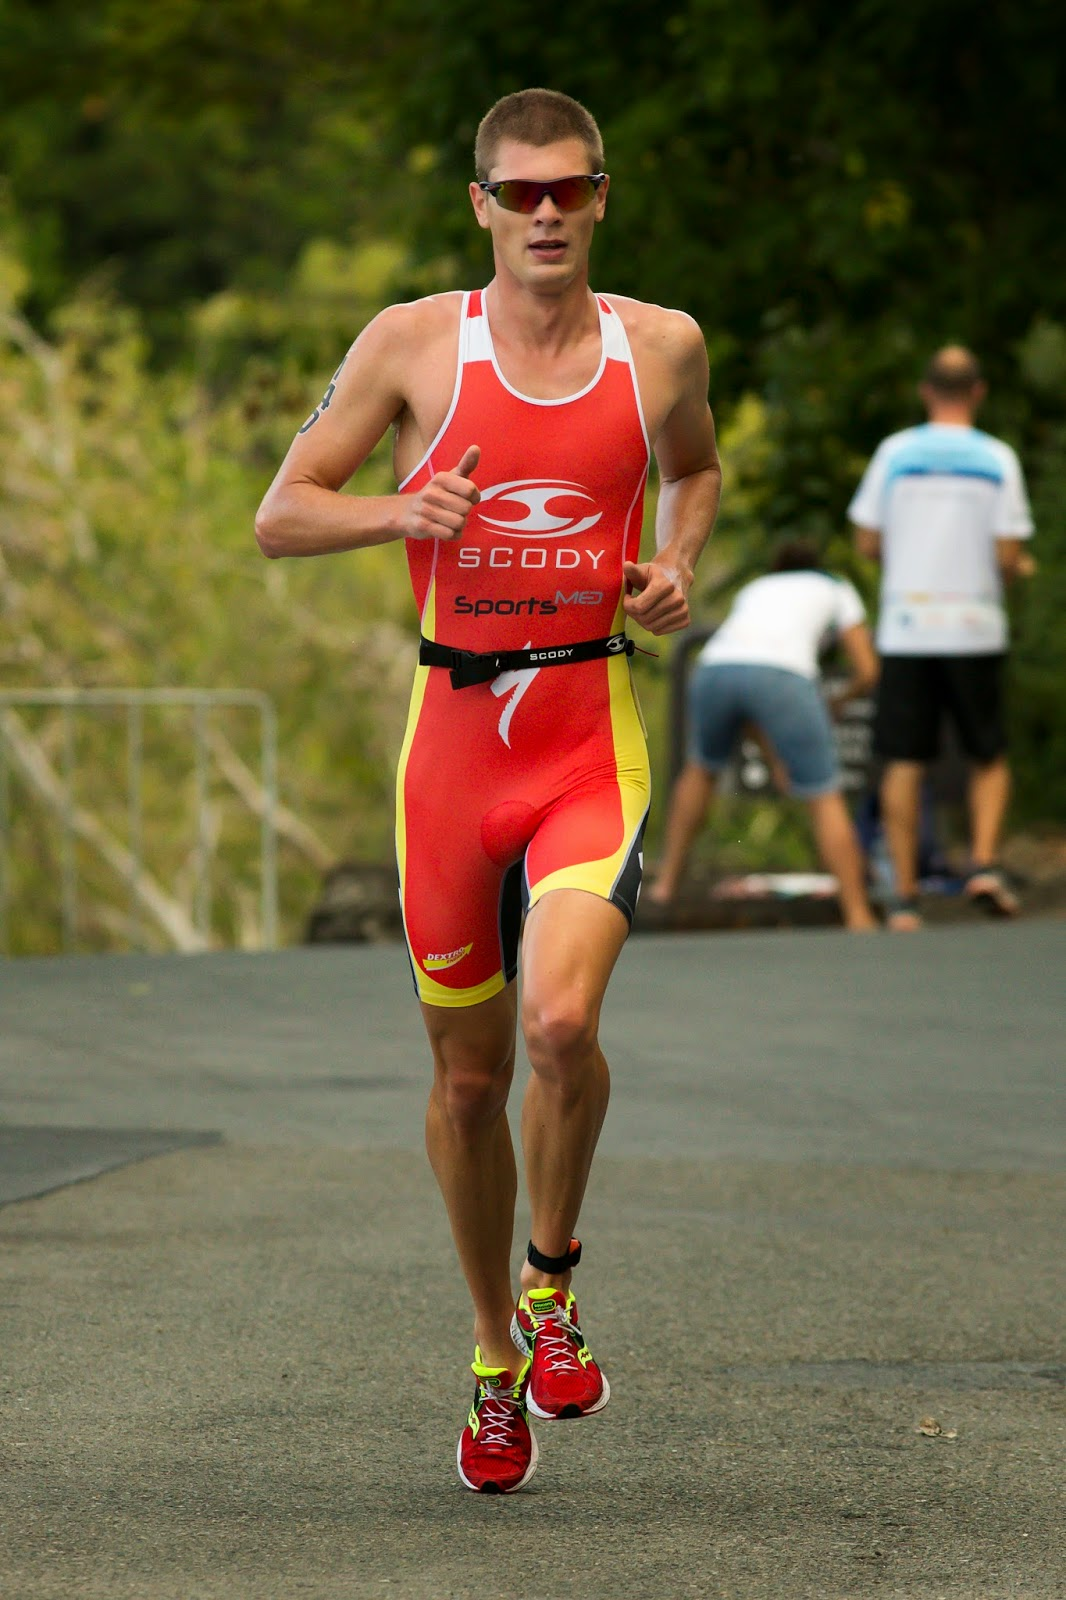 sam betten professional triathlete hamilton island. Black Bedroom Furniture Sets. Home Design Ideas